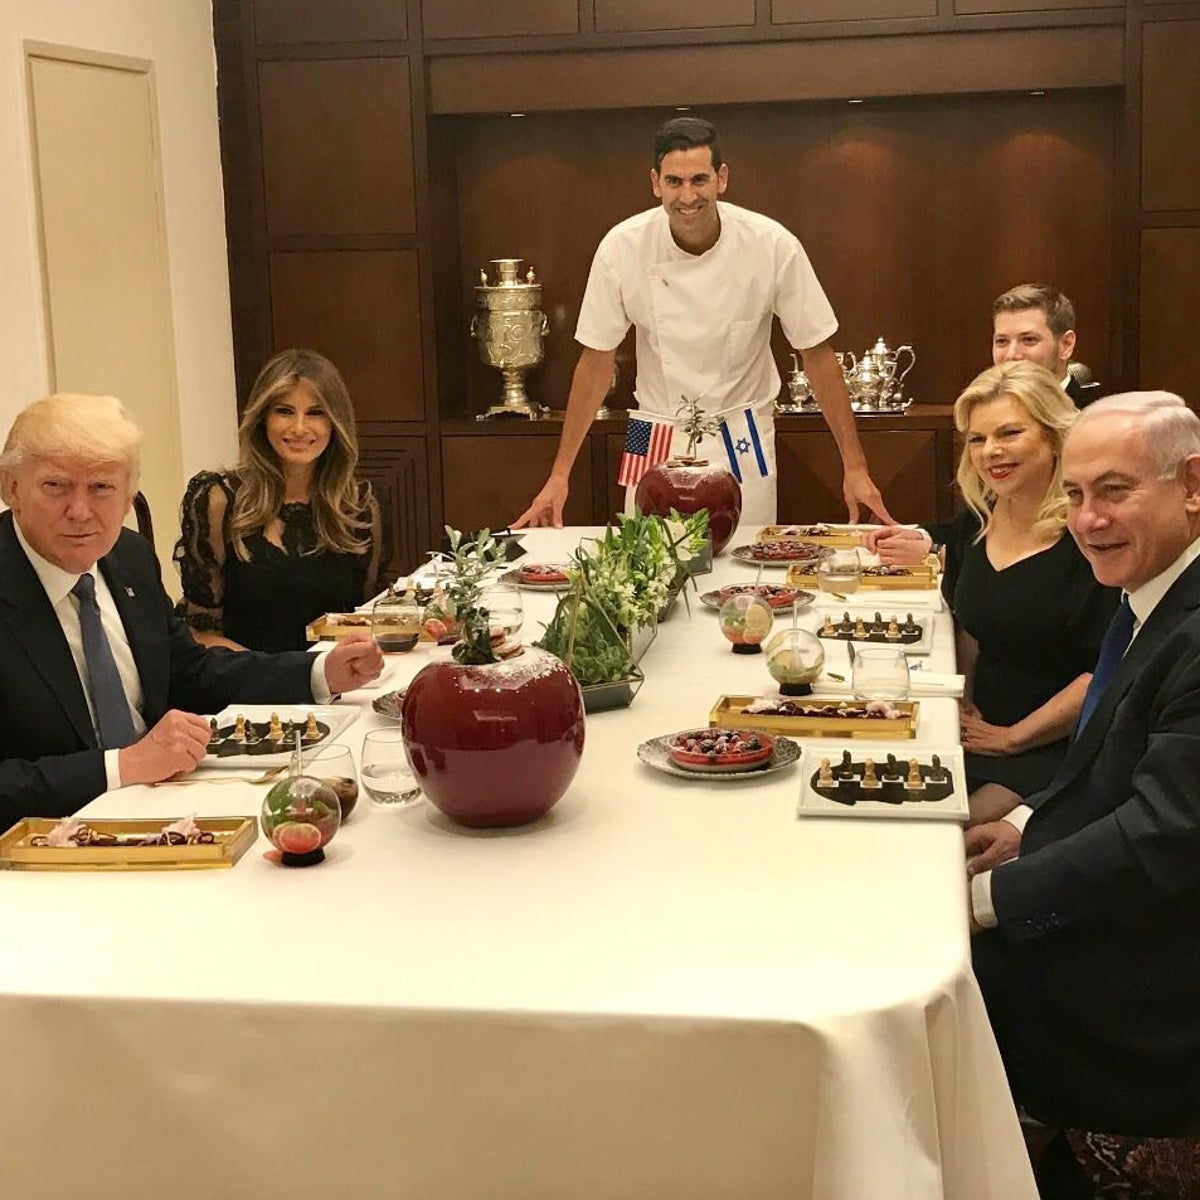 Chef Segev Moshe poses in front of the dinner he prepared for U.S. President Donald Trump, his wife, Melania,  Prime Minister Benjamin Netanyahu, his wife, Sara, and son, Yair, at the PM's residence.